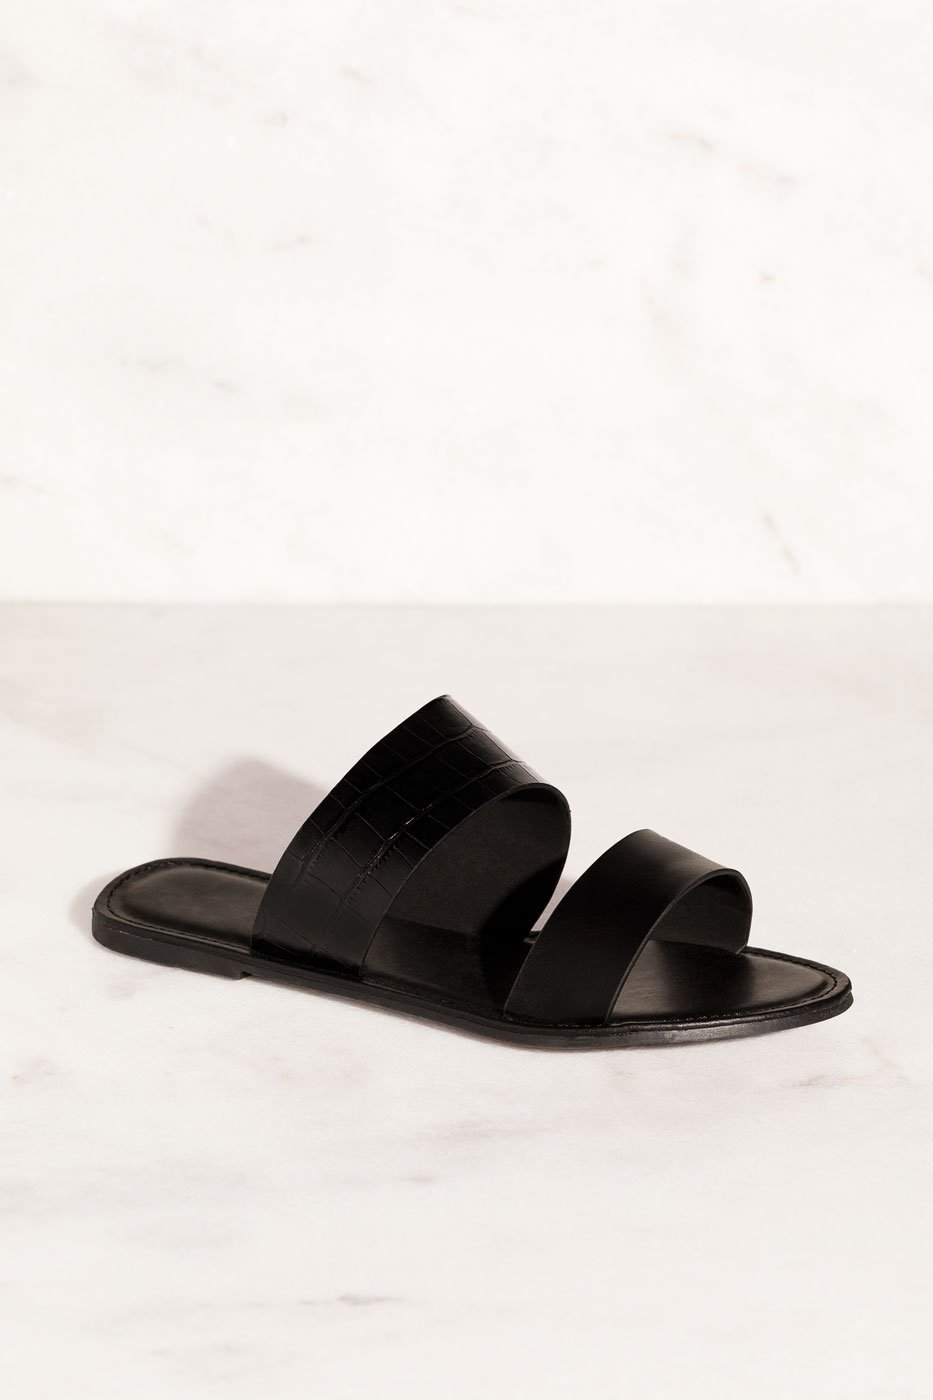 Black Crocodile Slide-On Sandals